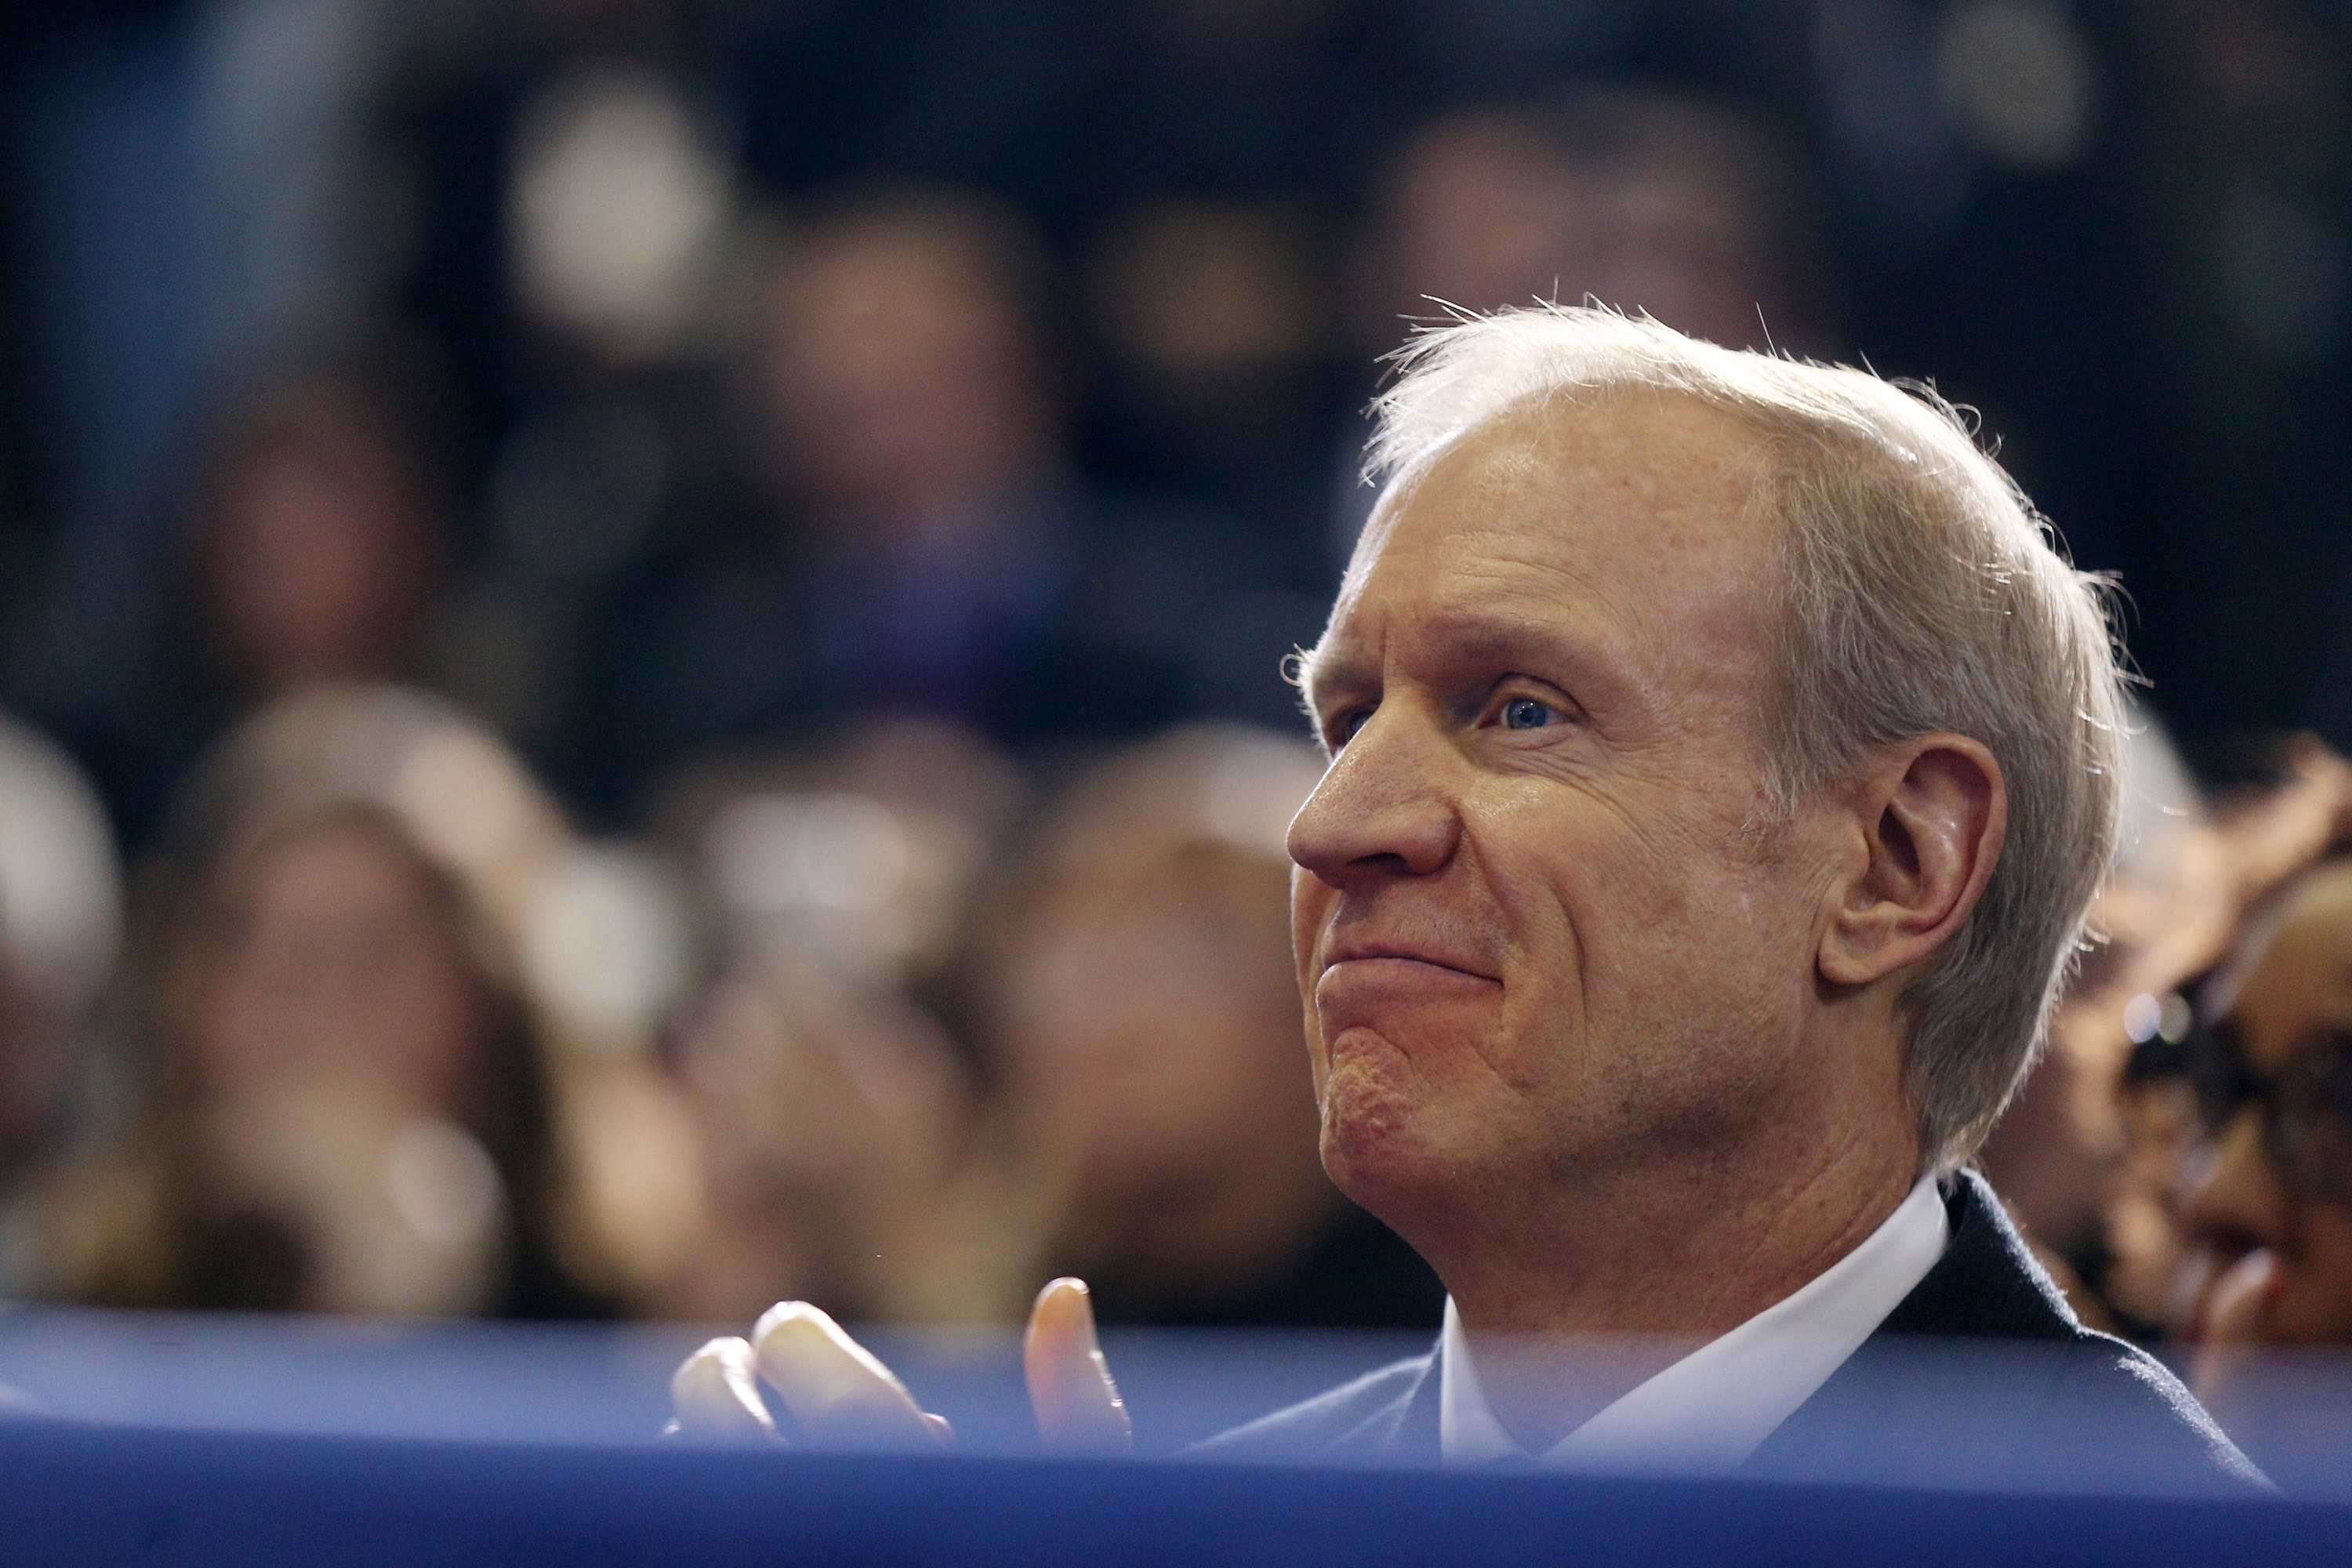 Gov. Bruce Rauner watches from his seat in the audience as President Barack Obama speaks on the designation of the Pullman National Monument Thursday, Feb. 19, 2015 at Gwendolyn Brooks College Preparatory Academy in Chicago. (Anthony Souffle | Chicago Tribune | TNS)